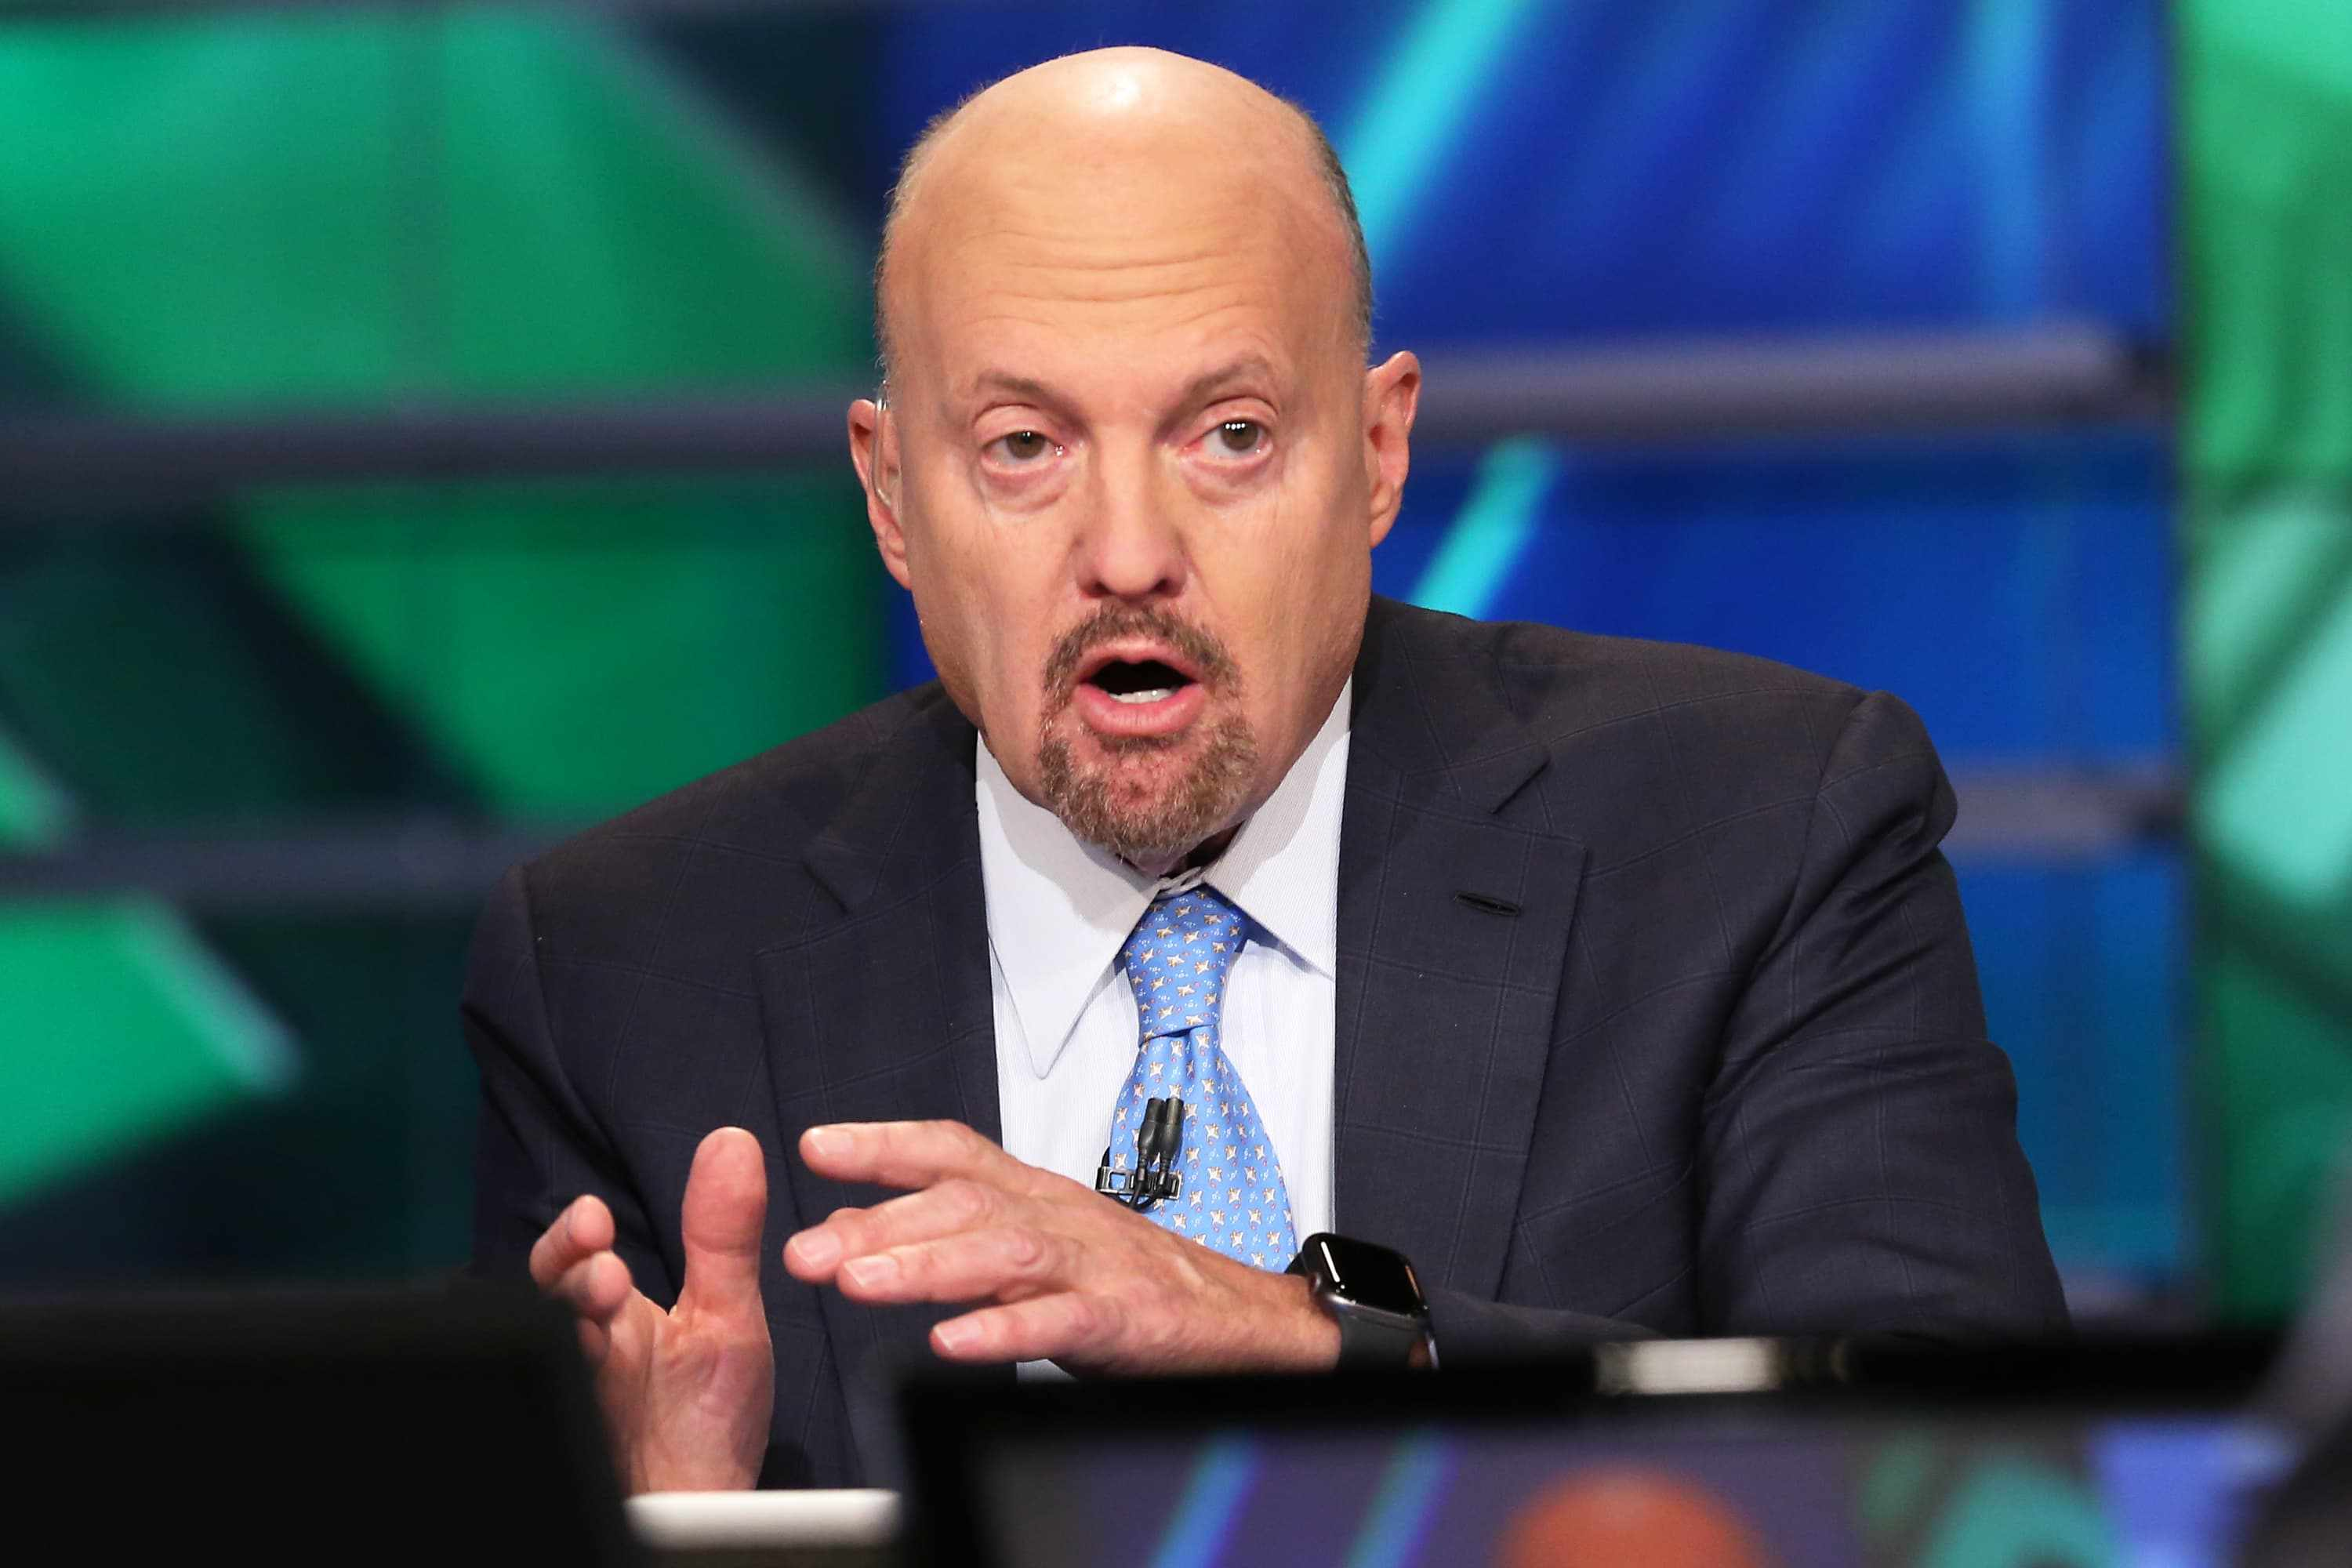 ether cramer bitcoin cryptocurrency hot